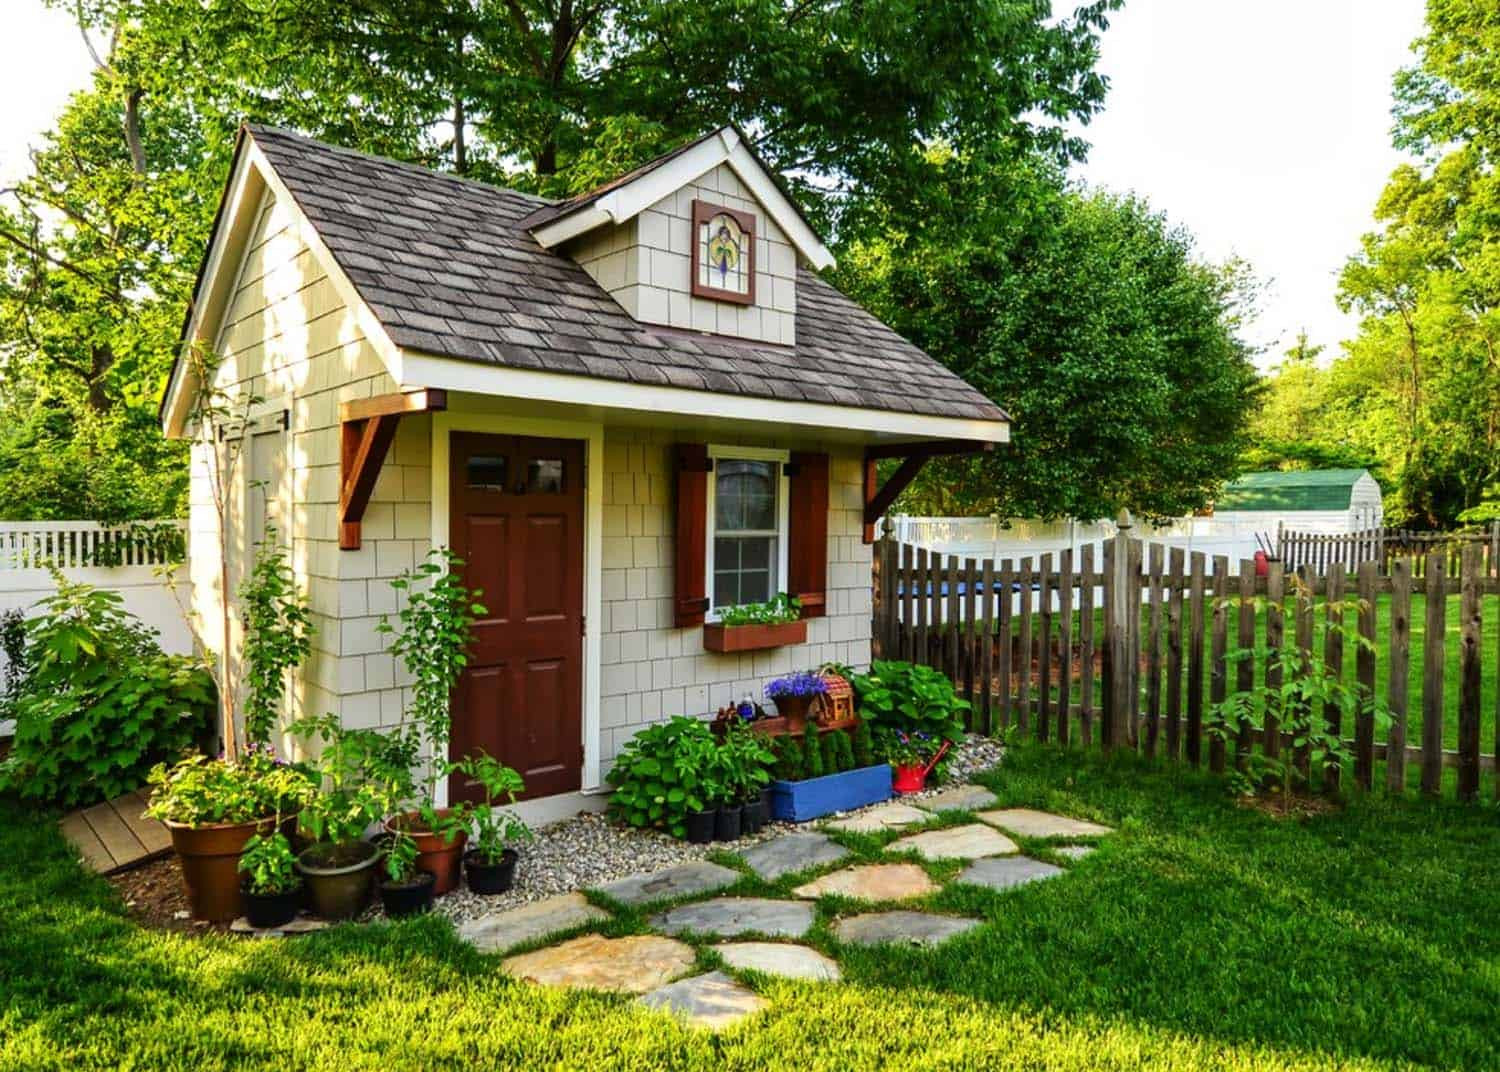 Best ideas about Backyard Shed Ideas . Save or Pin 40 Simply amazing garden shed ideas Now.